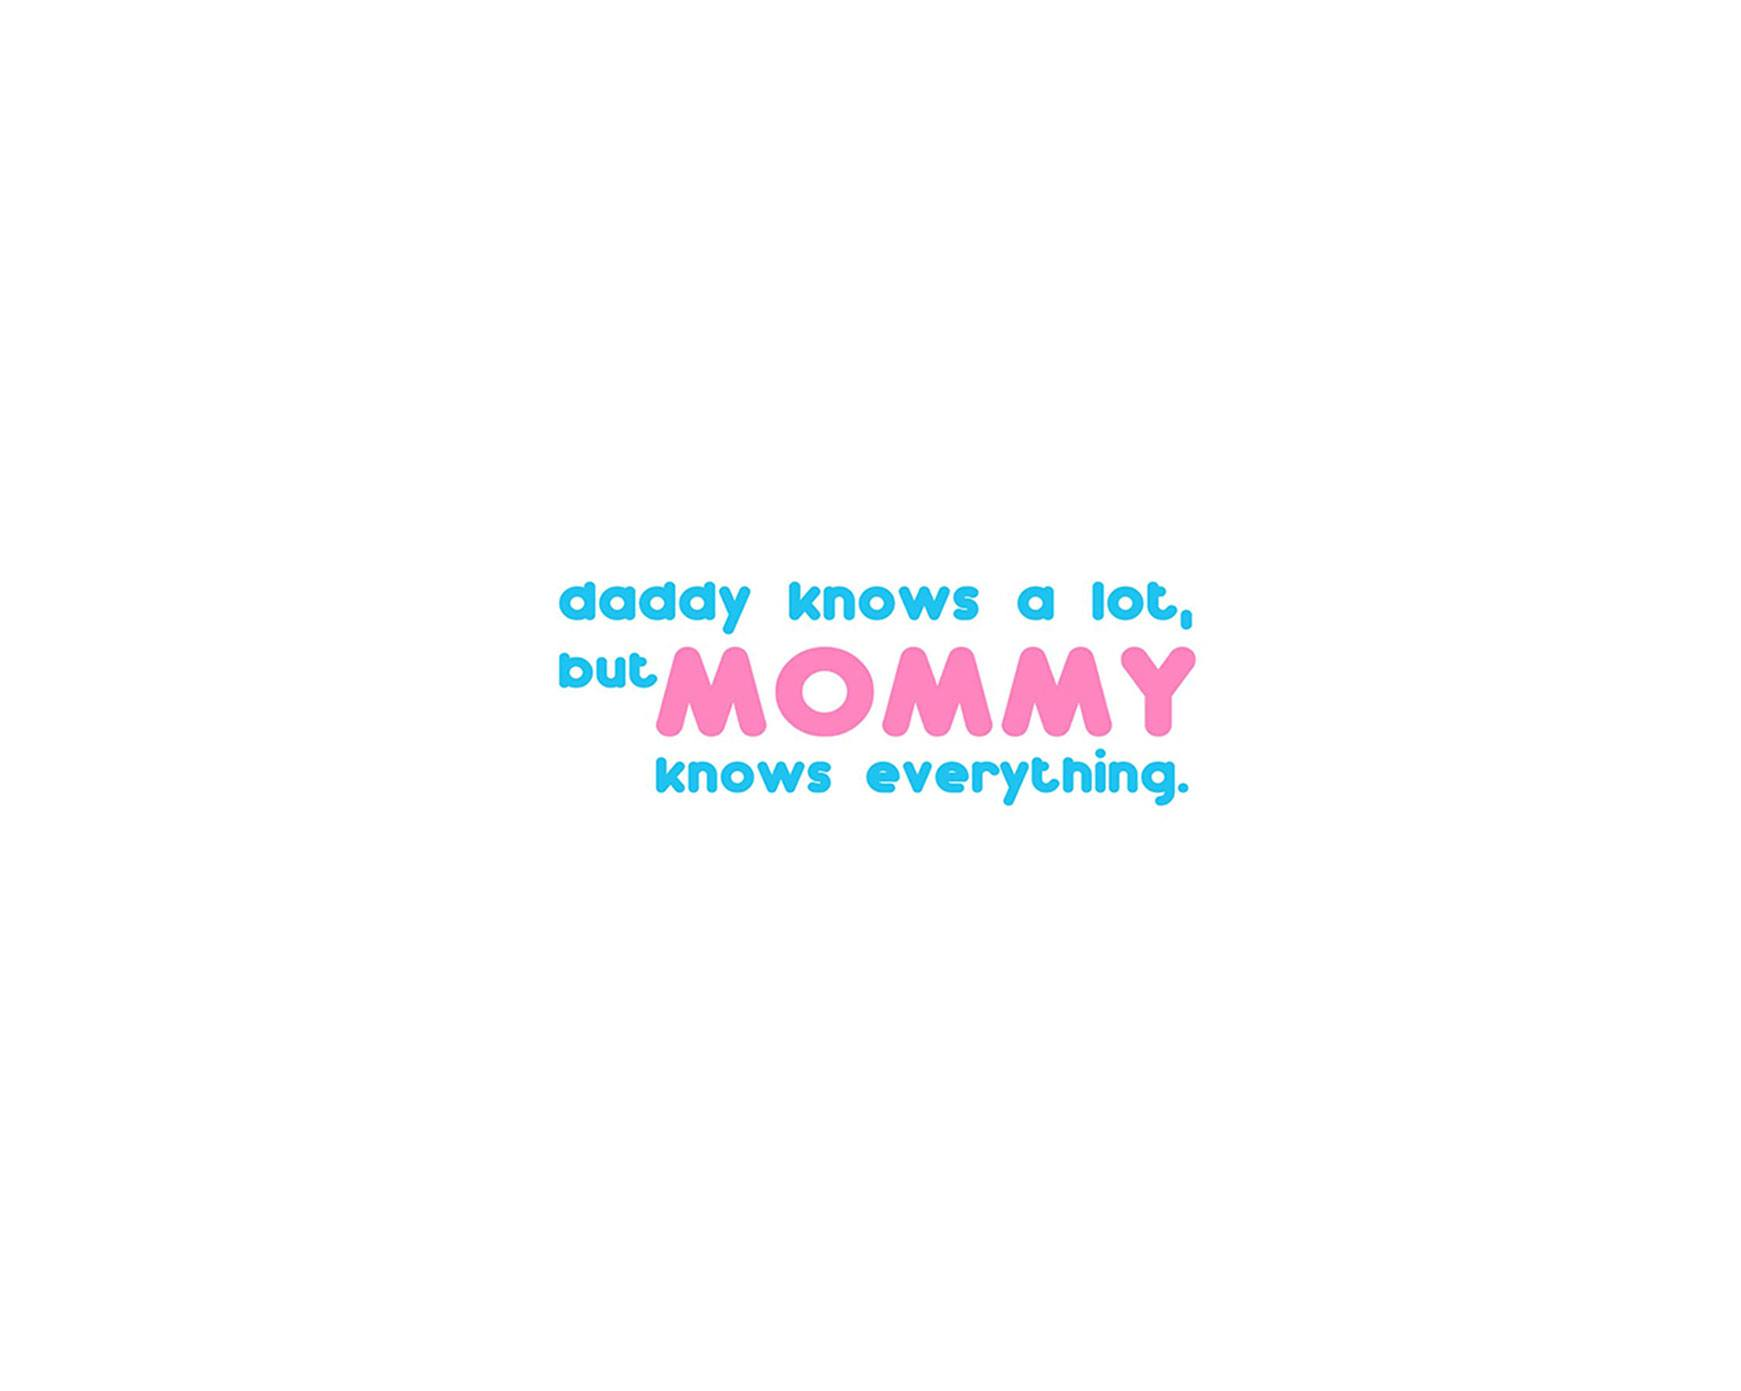 MOMMY-KNOWS-EVERYTHING